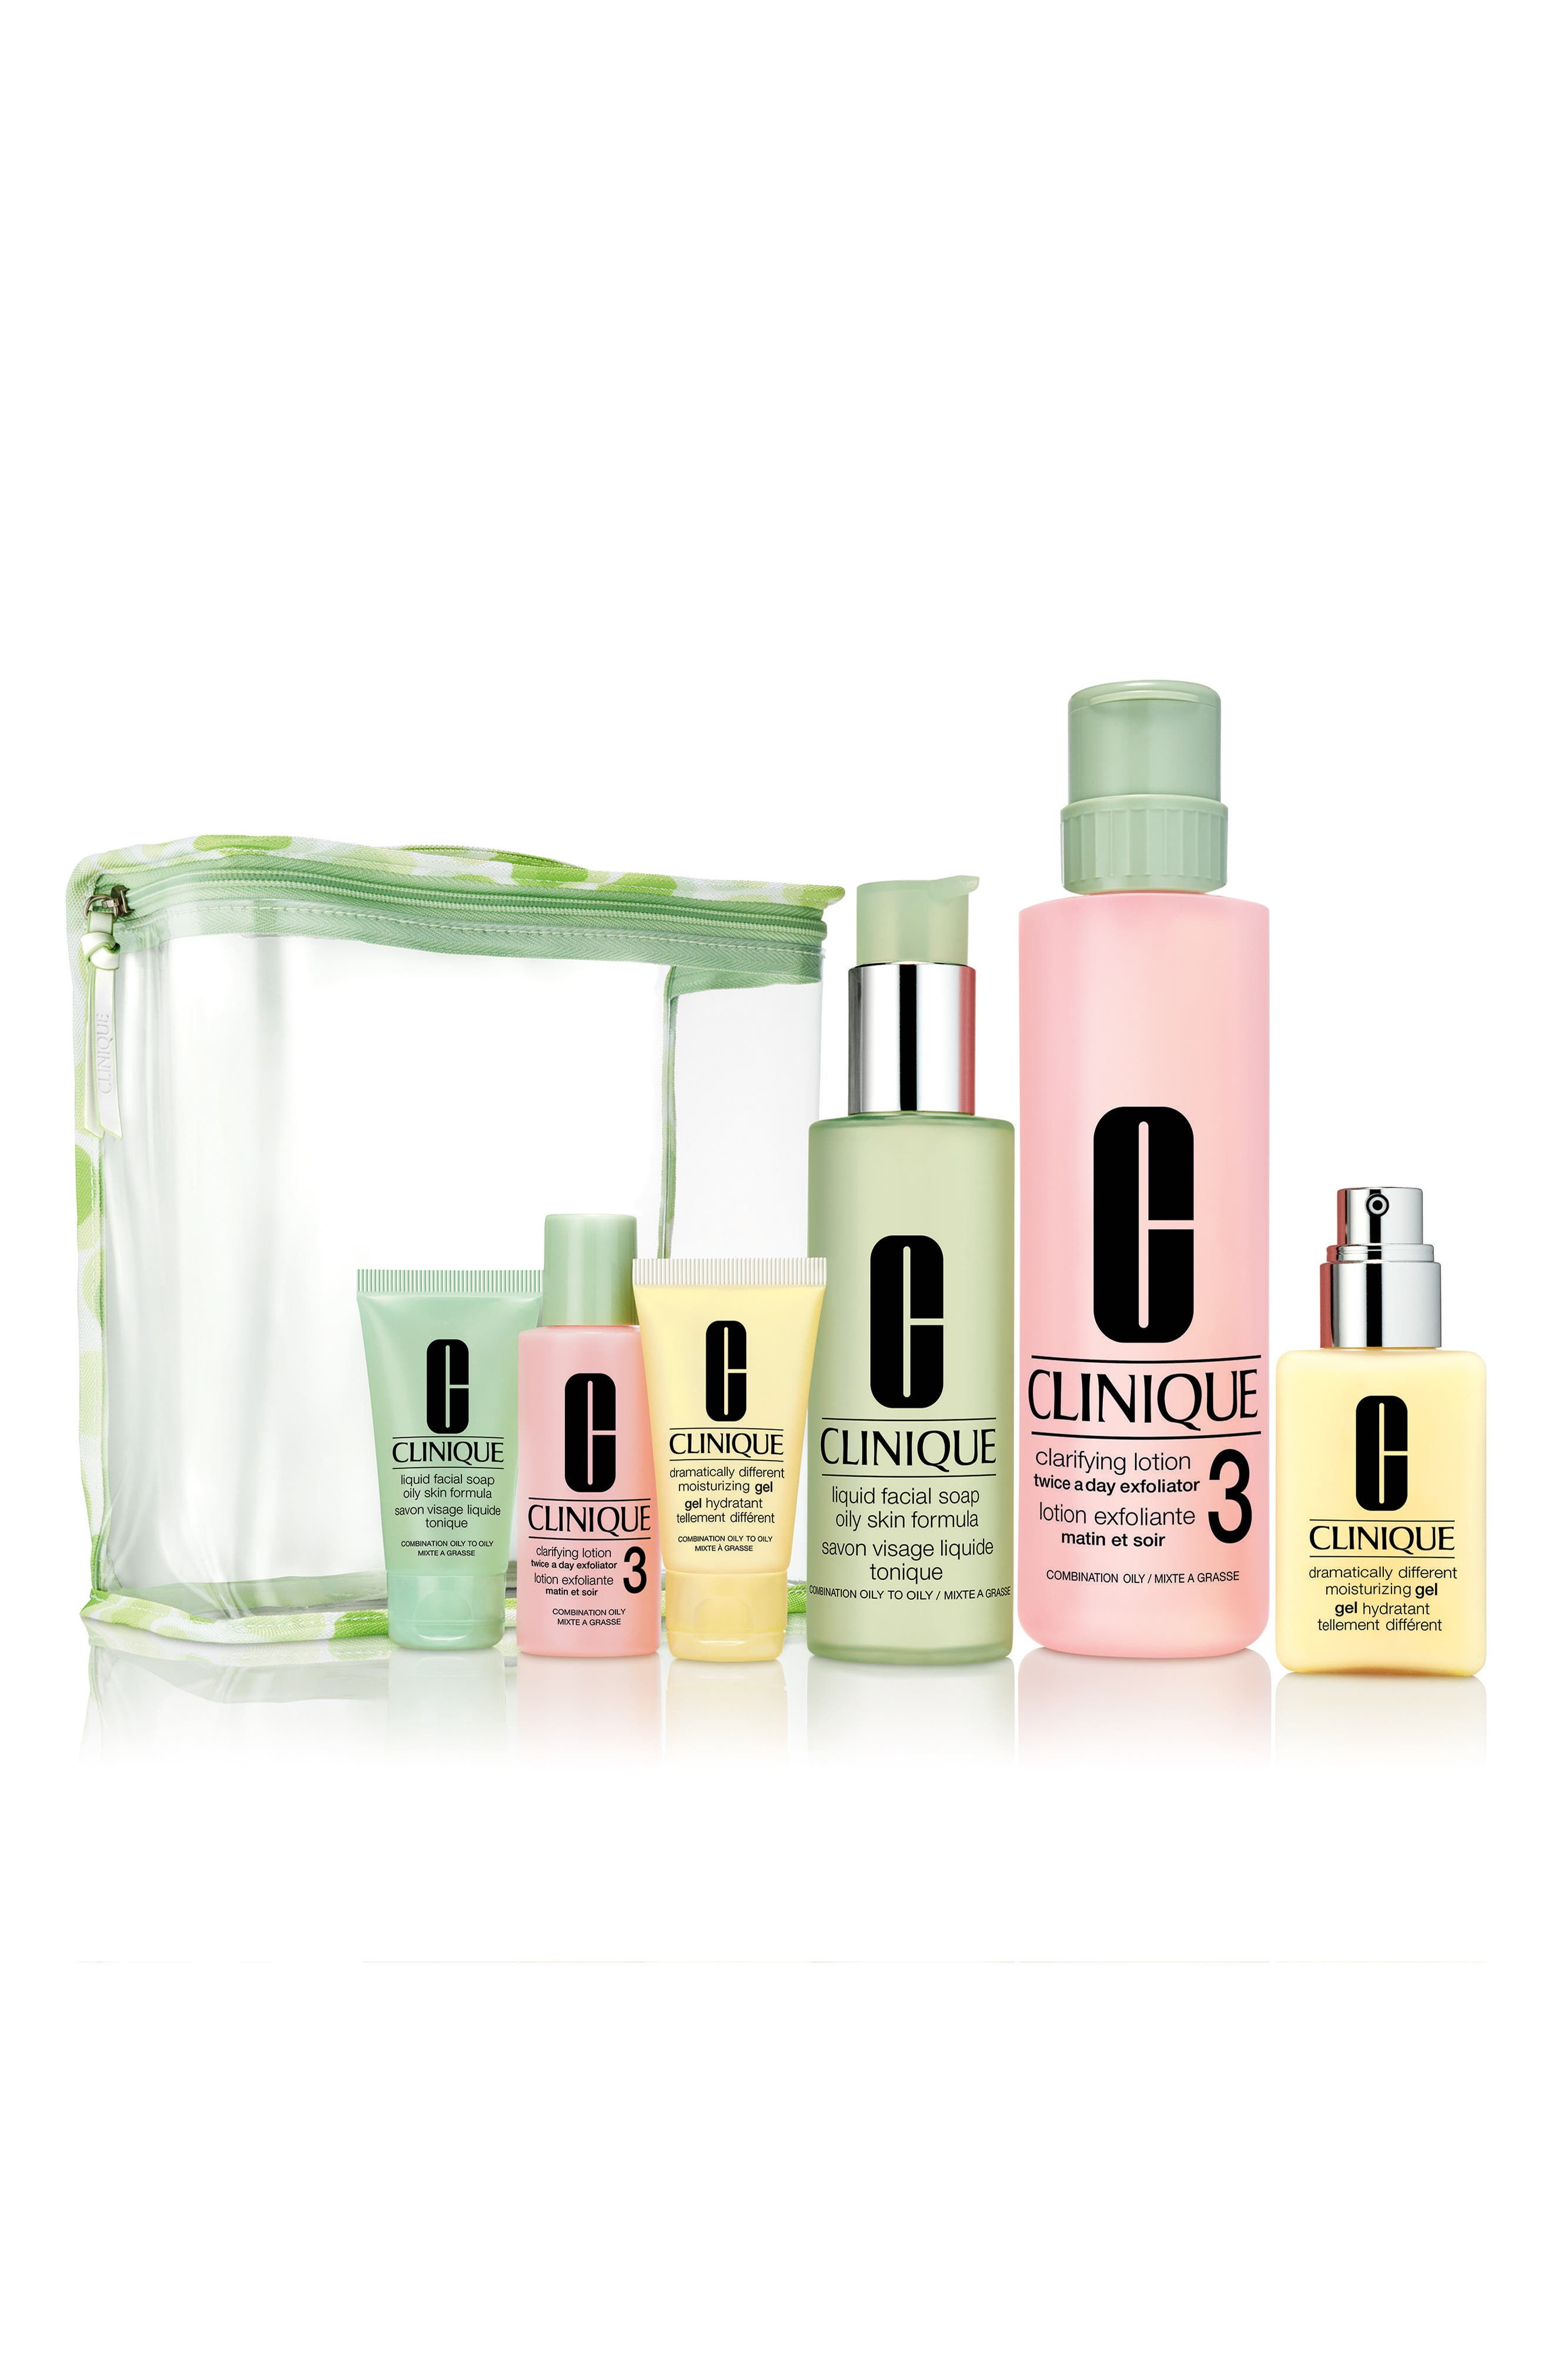 Clinique Great Skin Everywhere Skin Types III & IV Set ($92.50 Value)